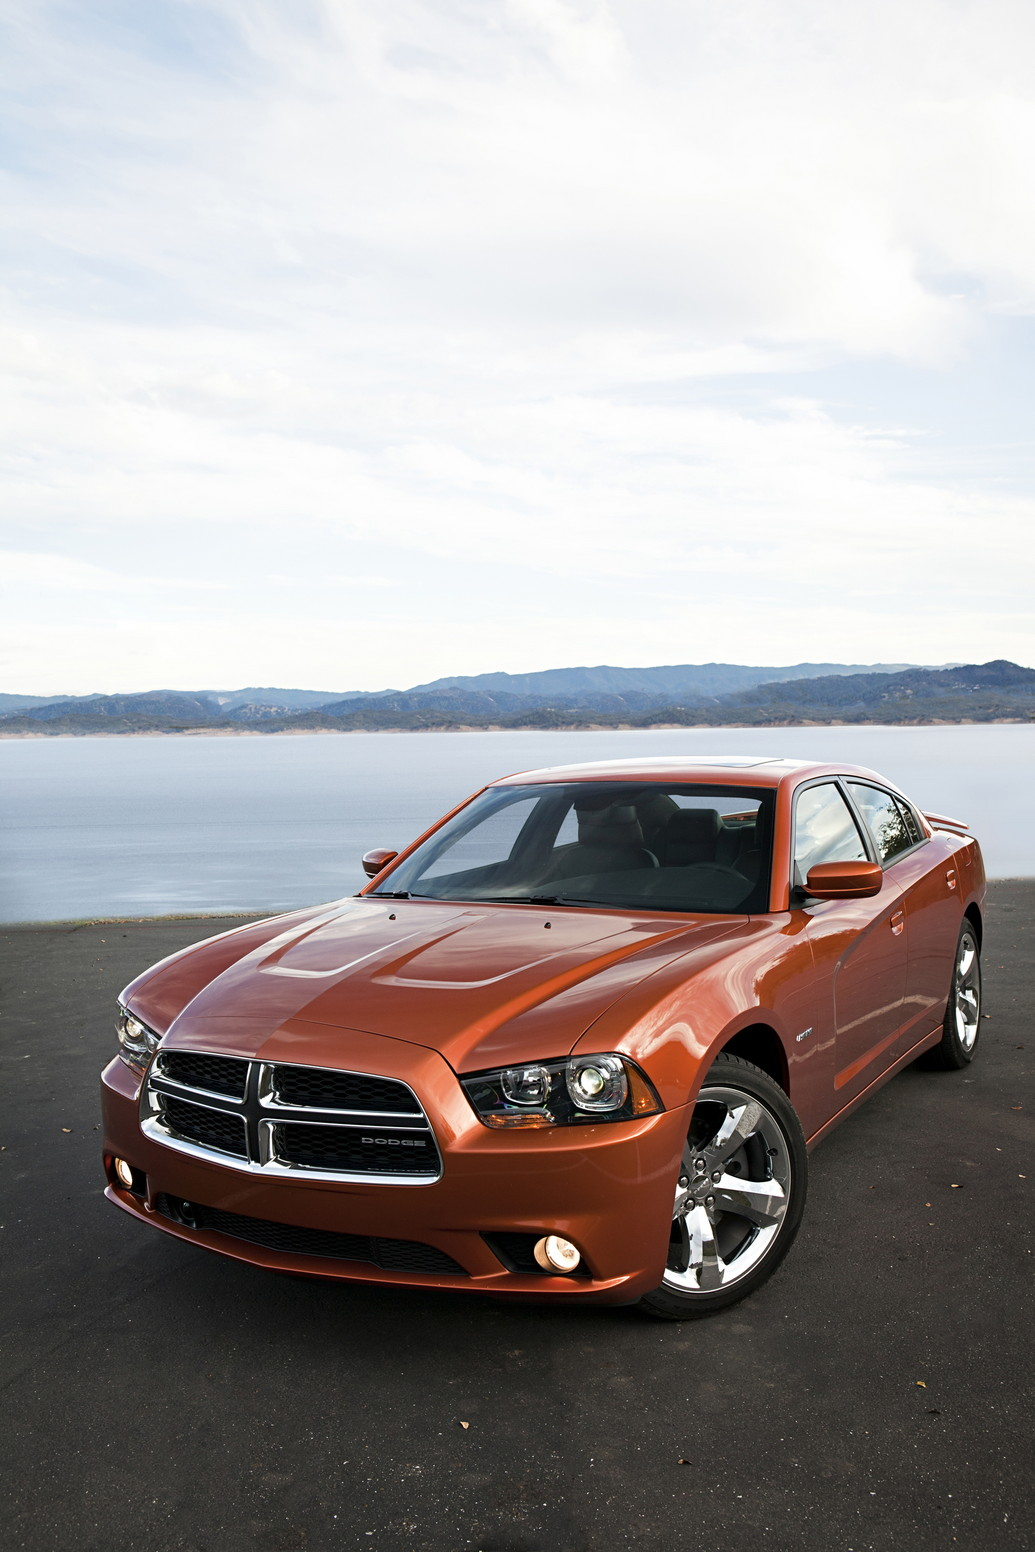 2011 dodge charger rt photos price specifications reviews. Black Bedroom Furniture Sets. Home Design Ideas